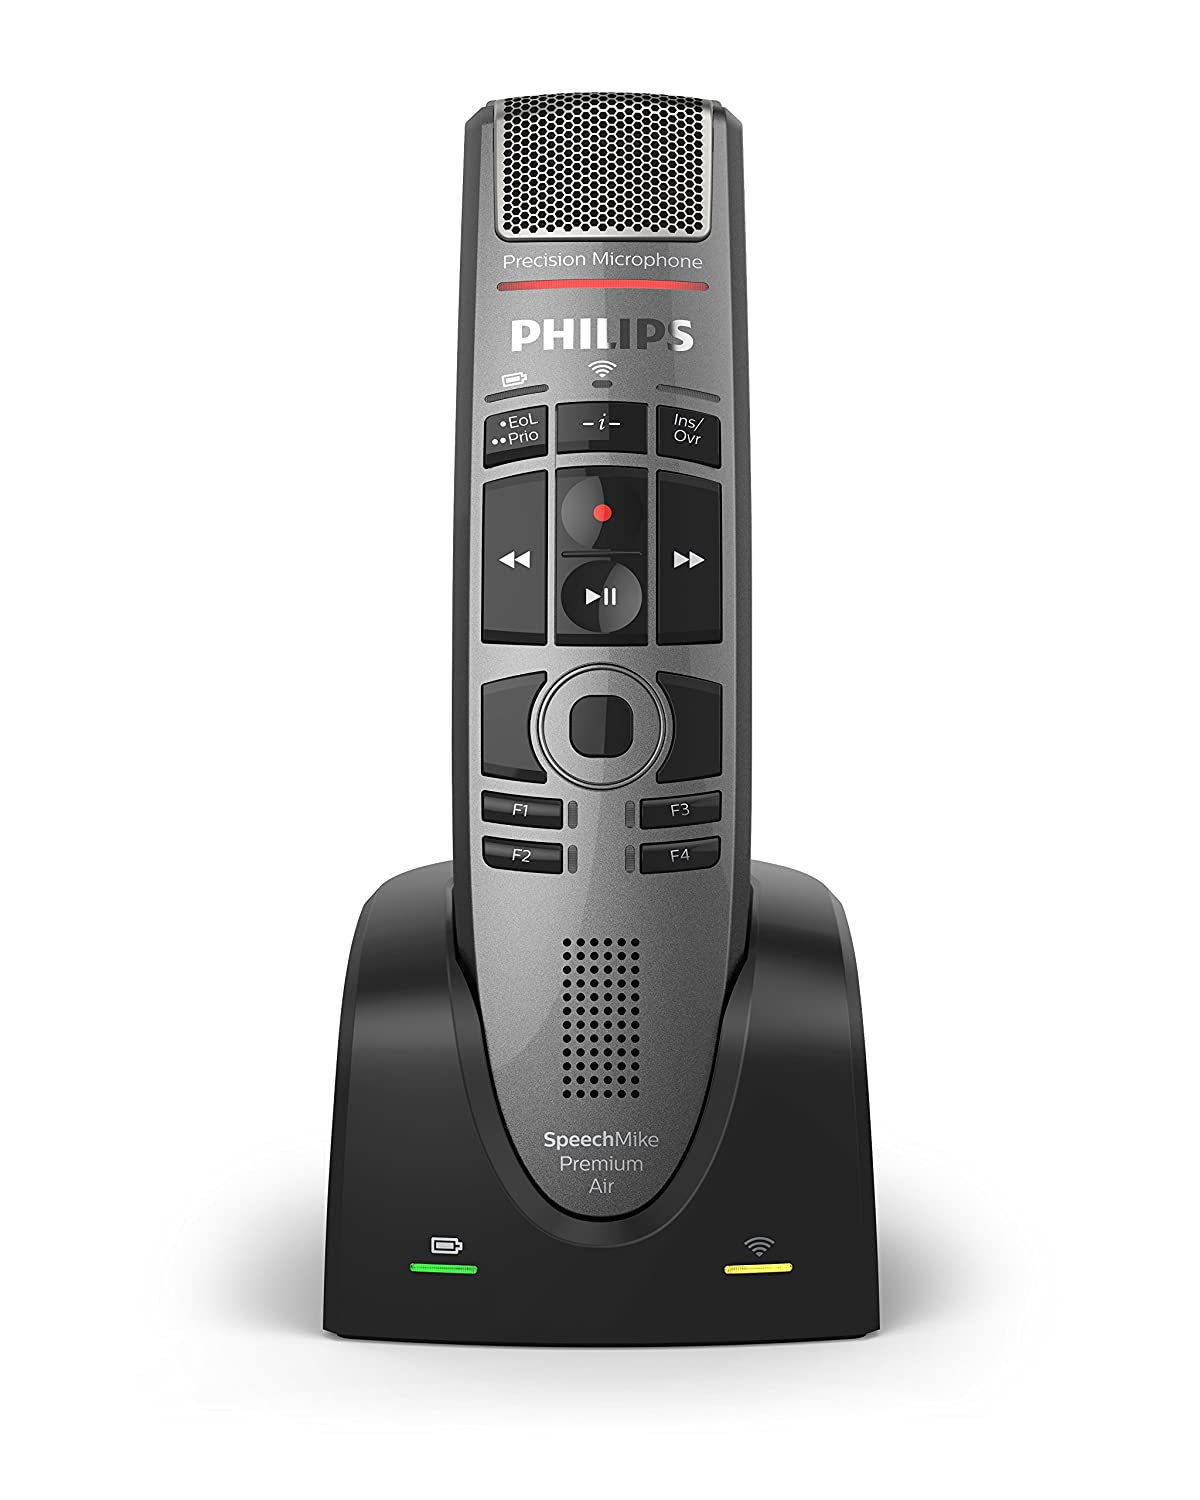 Philips SMP4000 SpeechMike Air Wireless Dictation Microphone with Push Button Design SMP4000/00